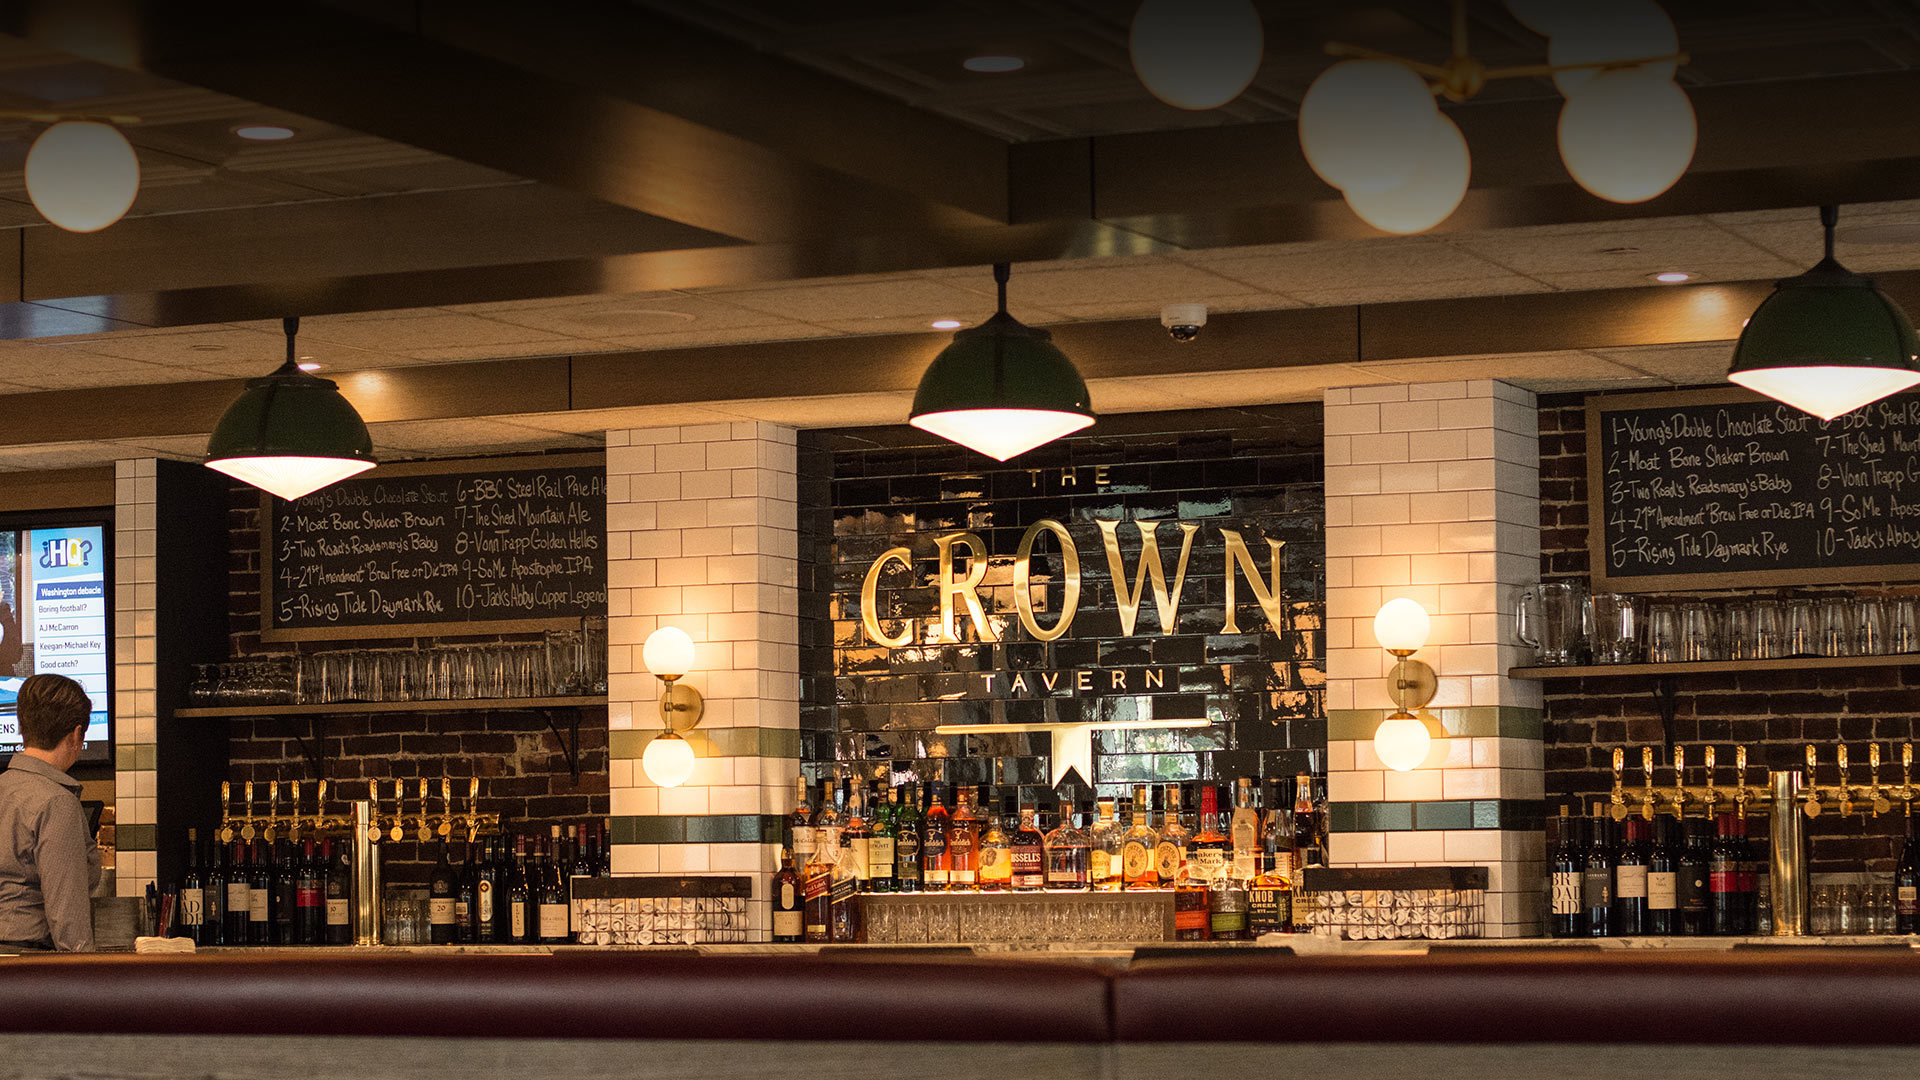 The Crown Tavern Hanover Street Manchester Nh